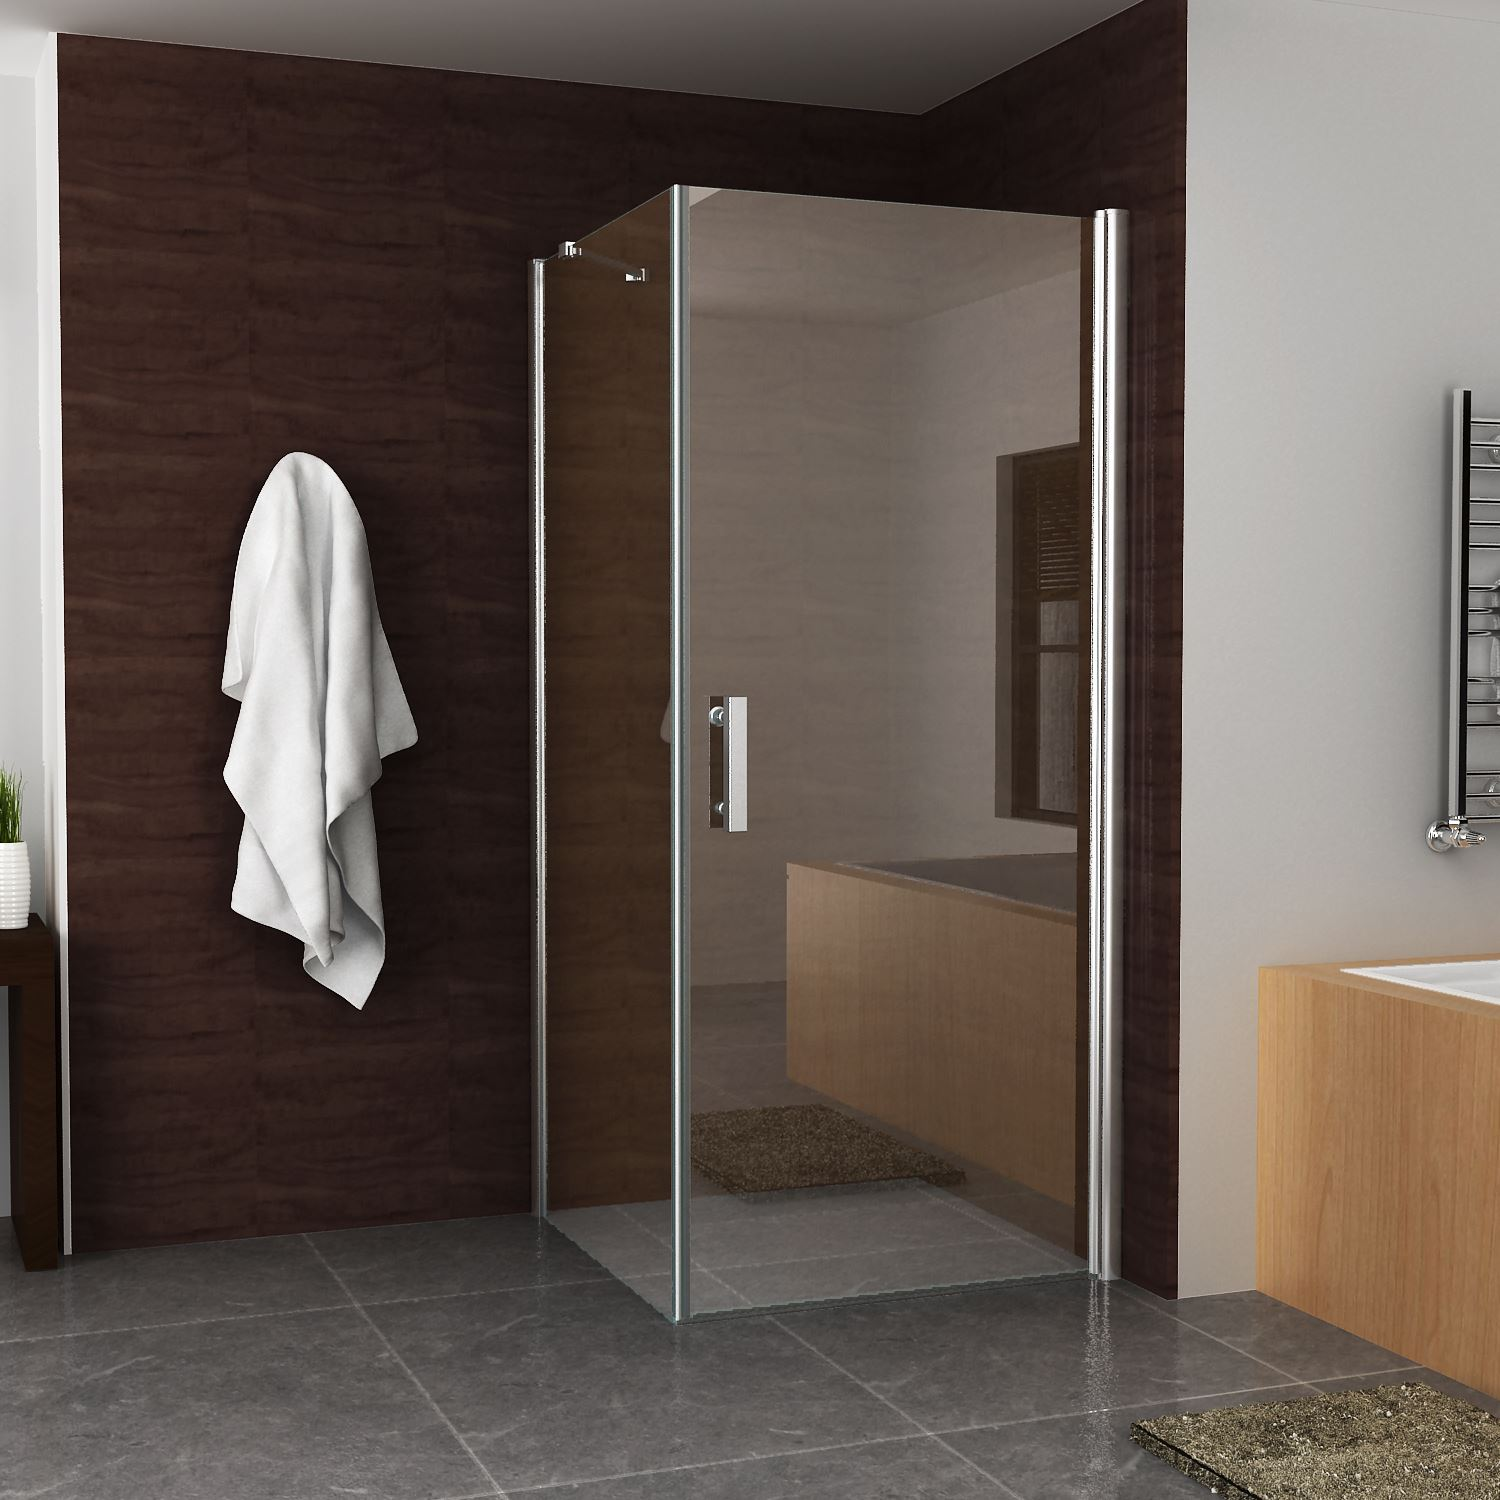 Douche 62056 Douchecabine vierkant 1 swingdeur 90x90x200cm 8mm Boss & Wessing met Nano coating